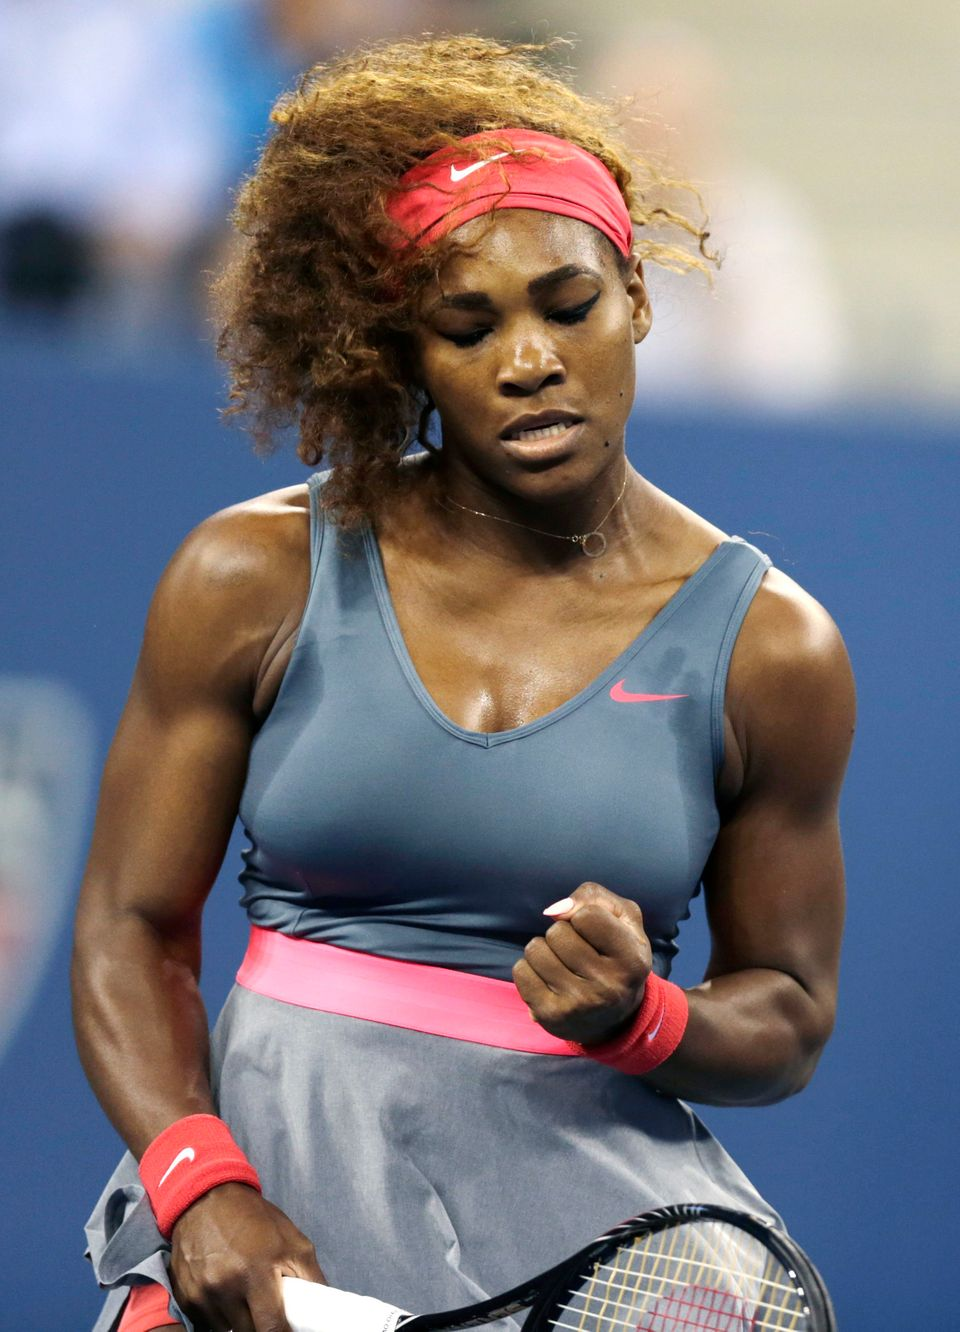 Serena Williams, of the United States, pumps her fist after winning a point against Carla Suarez Navarro, of Spain, during a